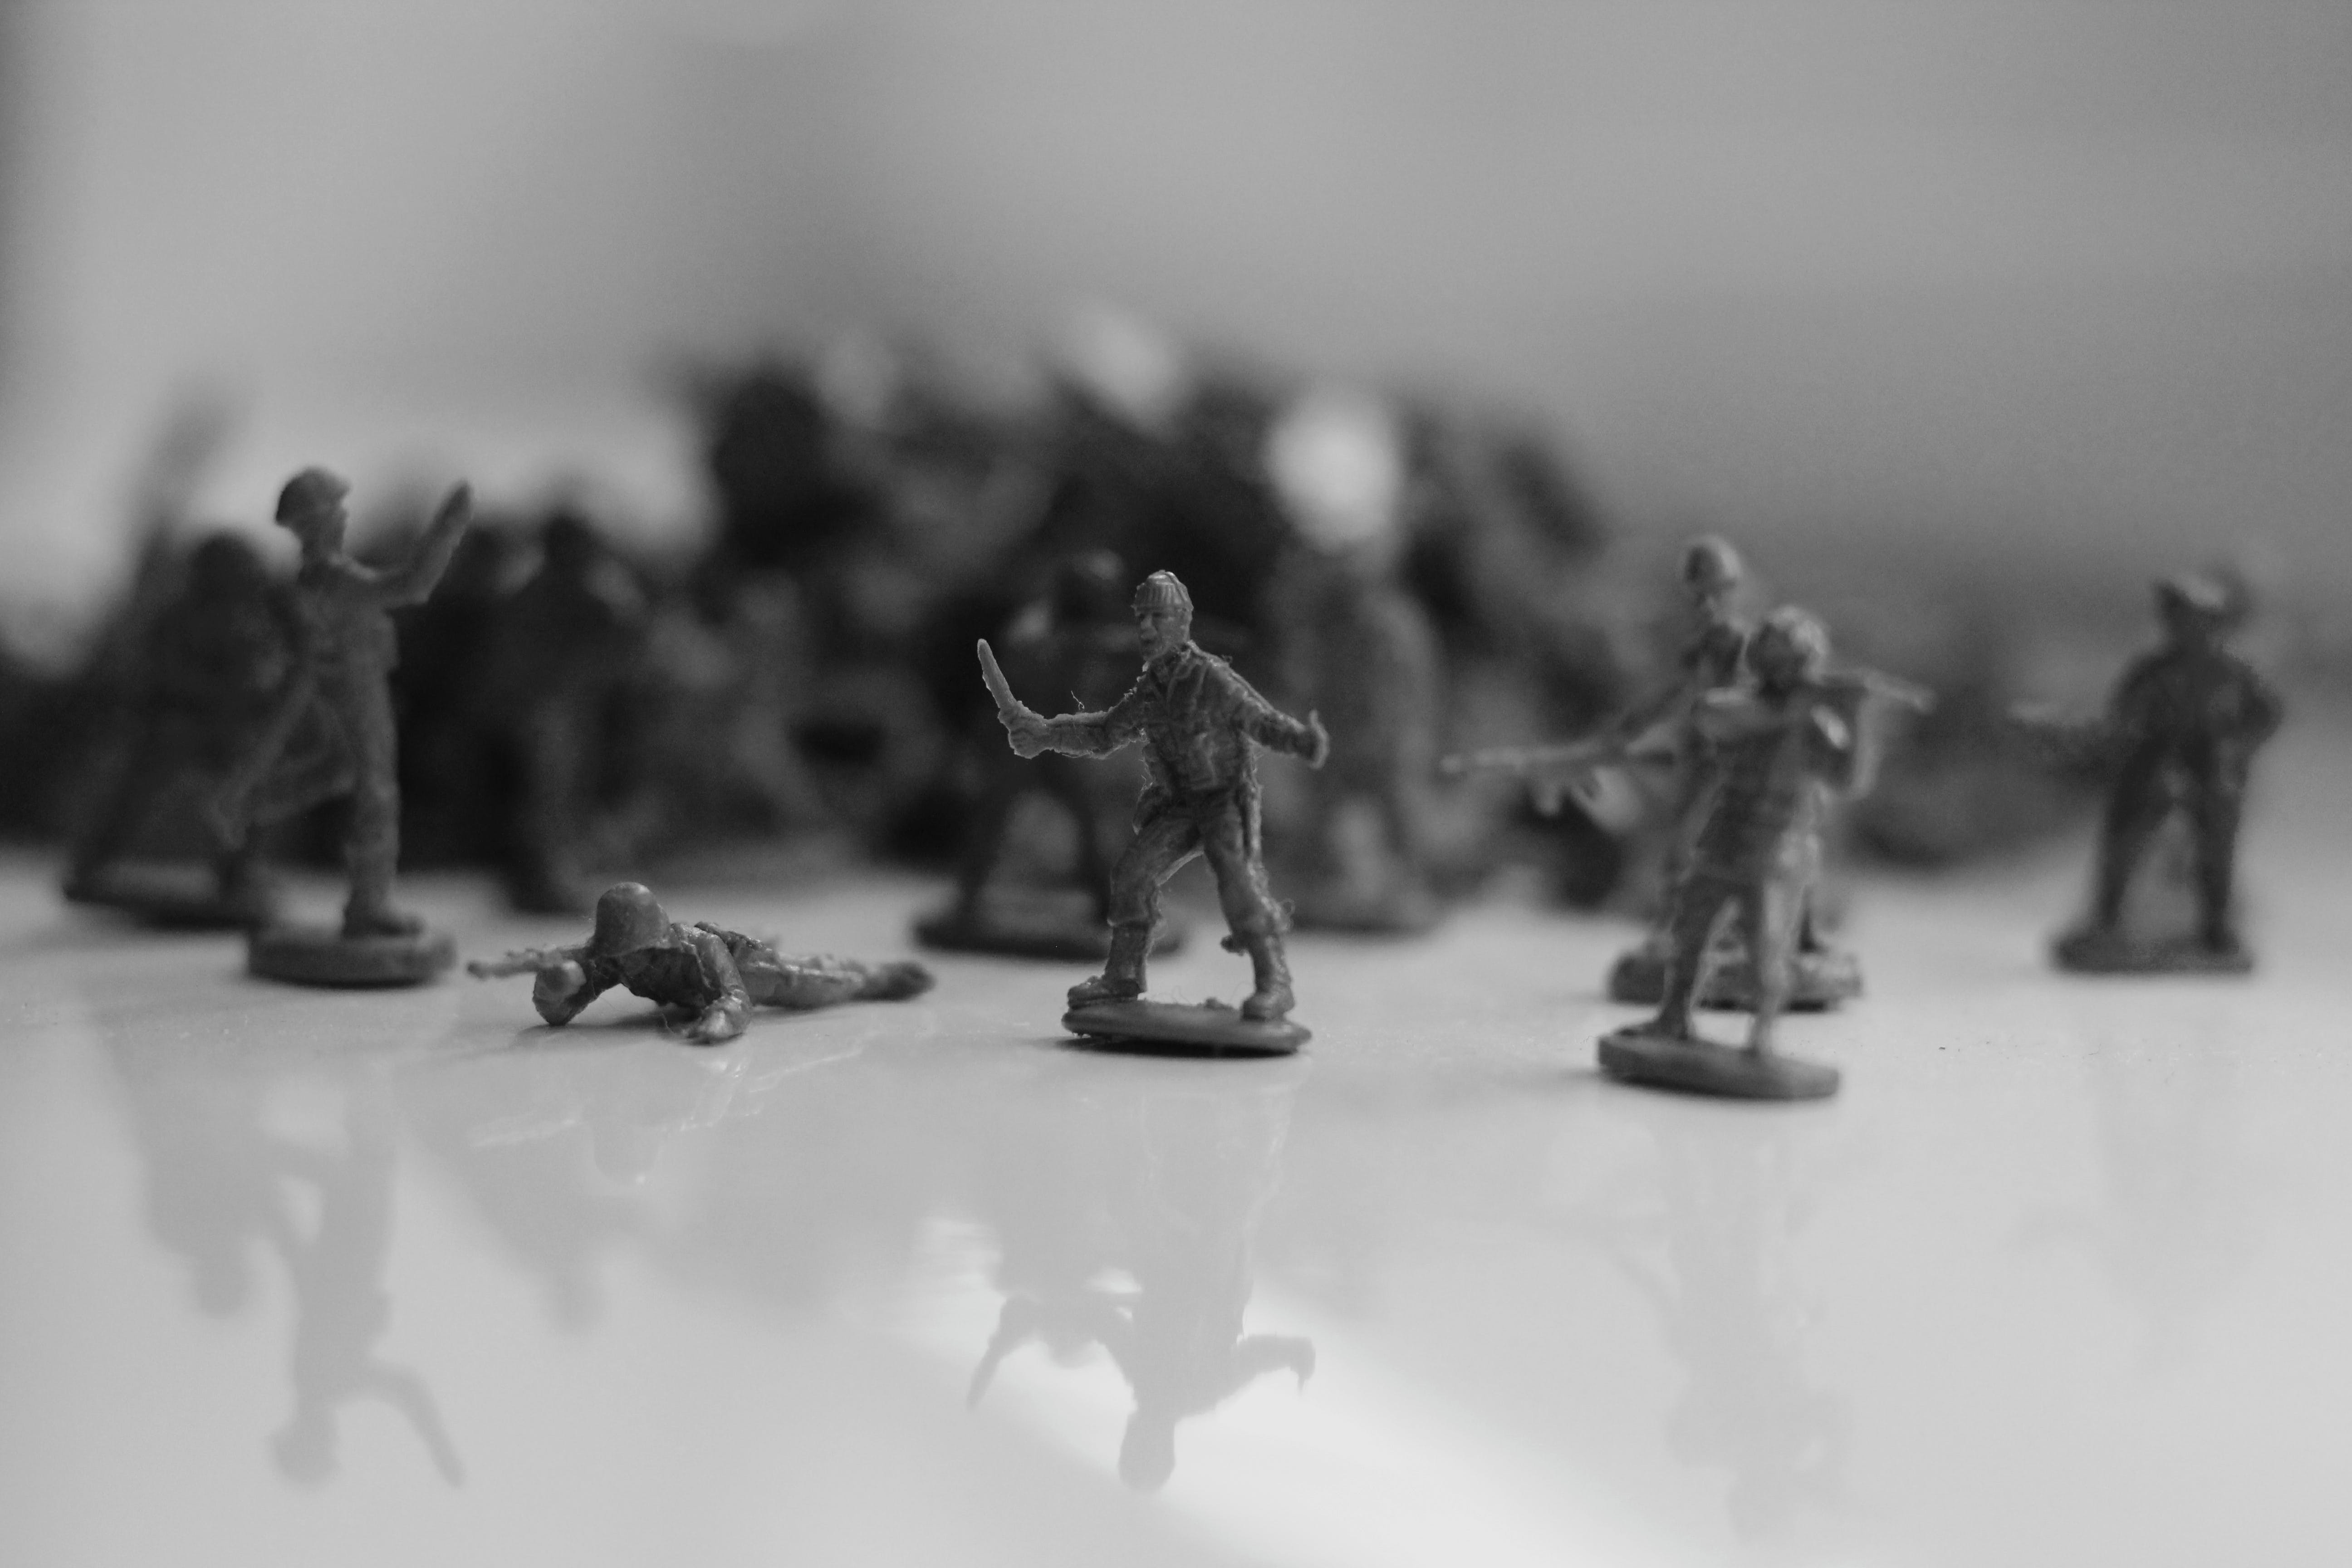 Photography of Soldier Toys